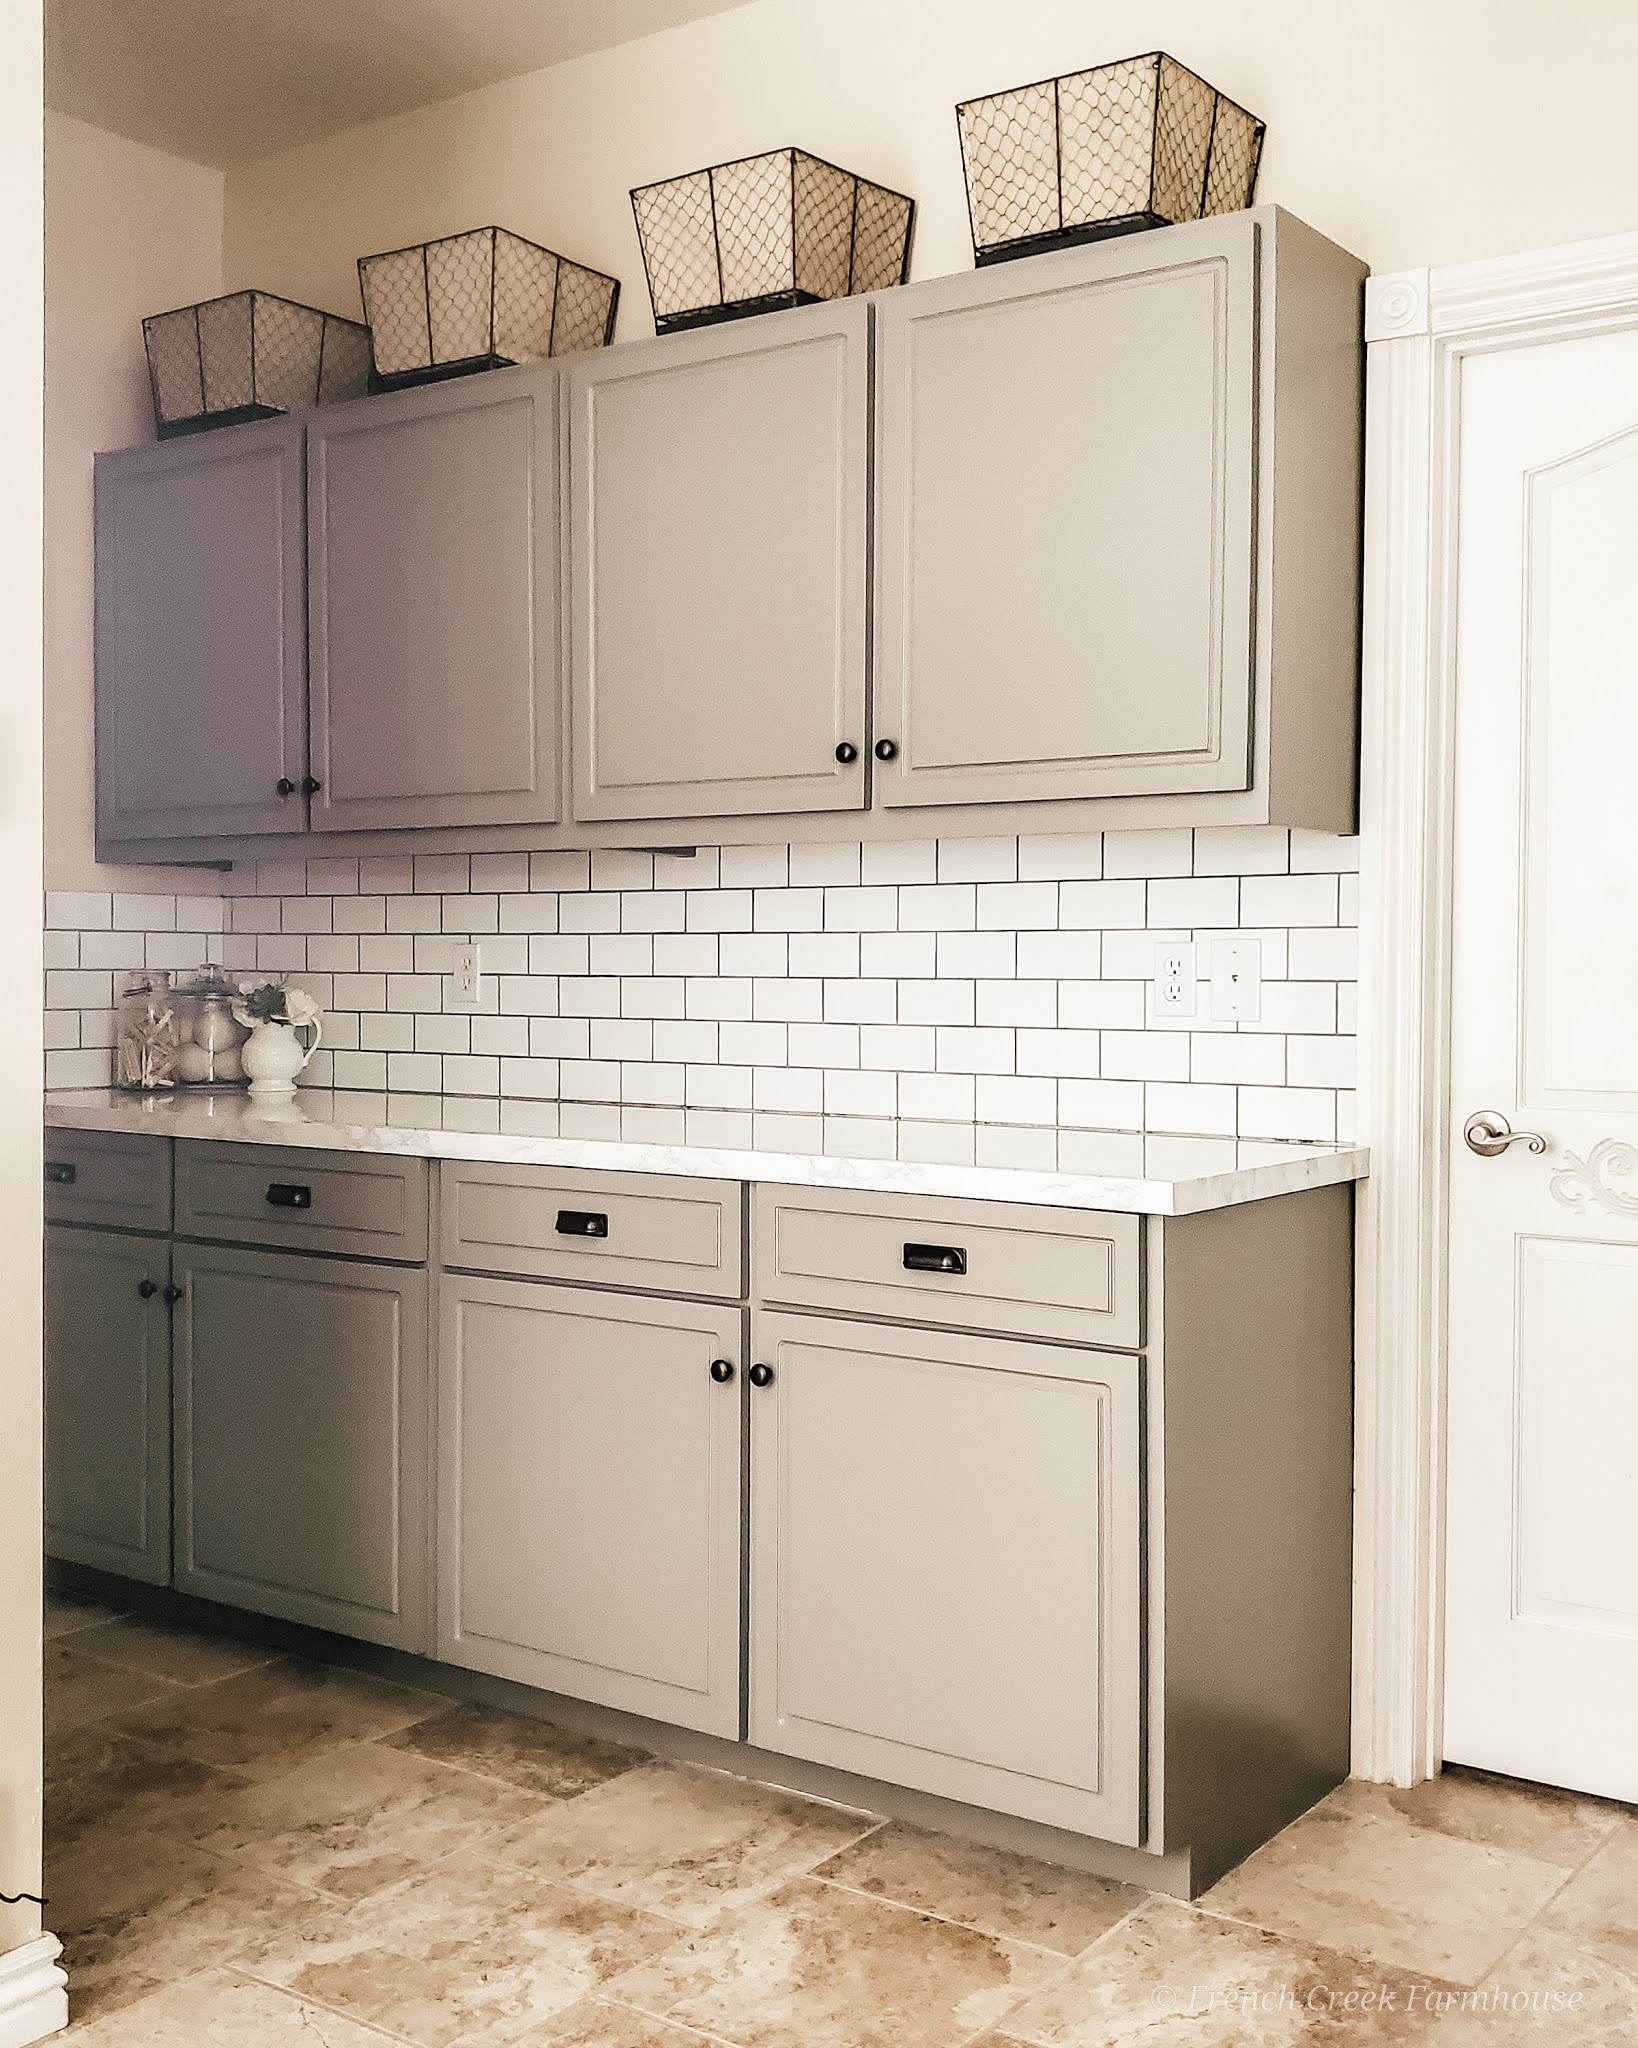 See how we transformed our mudroom in only 8 weeks